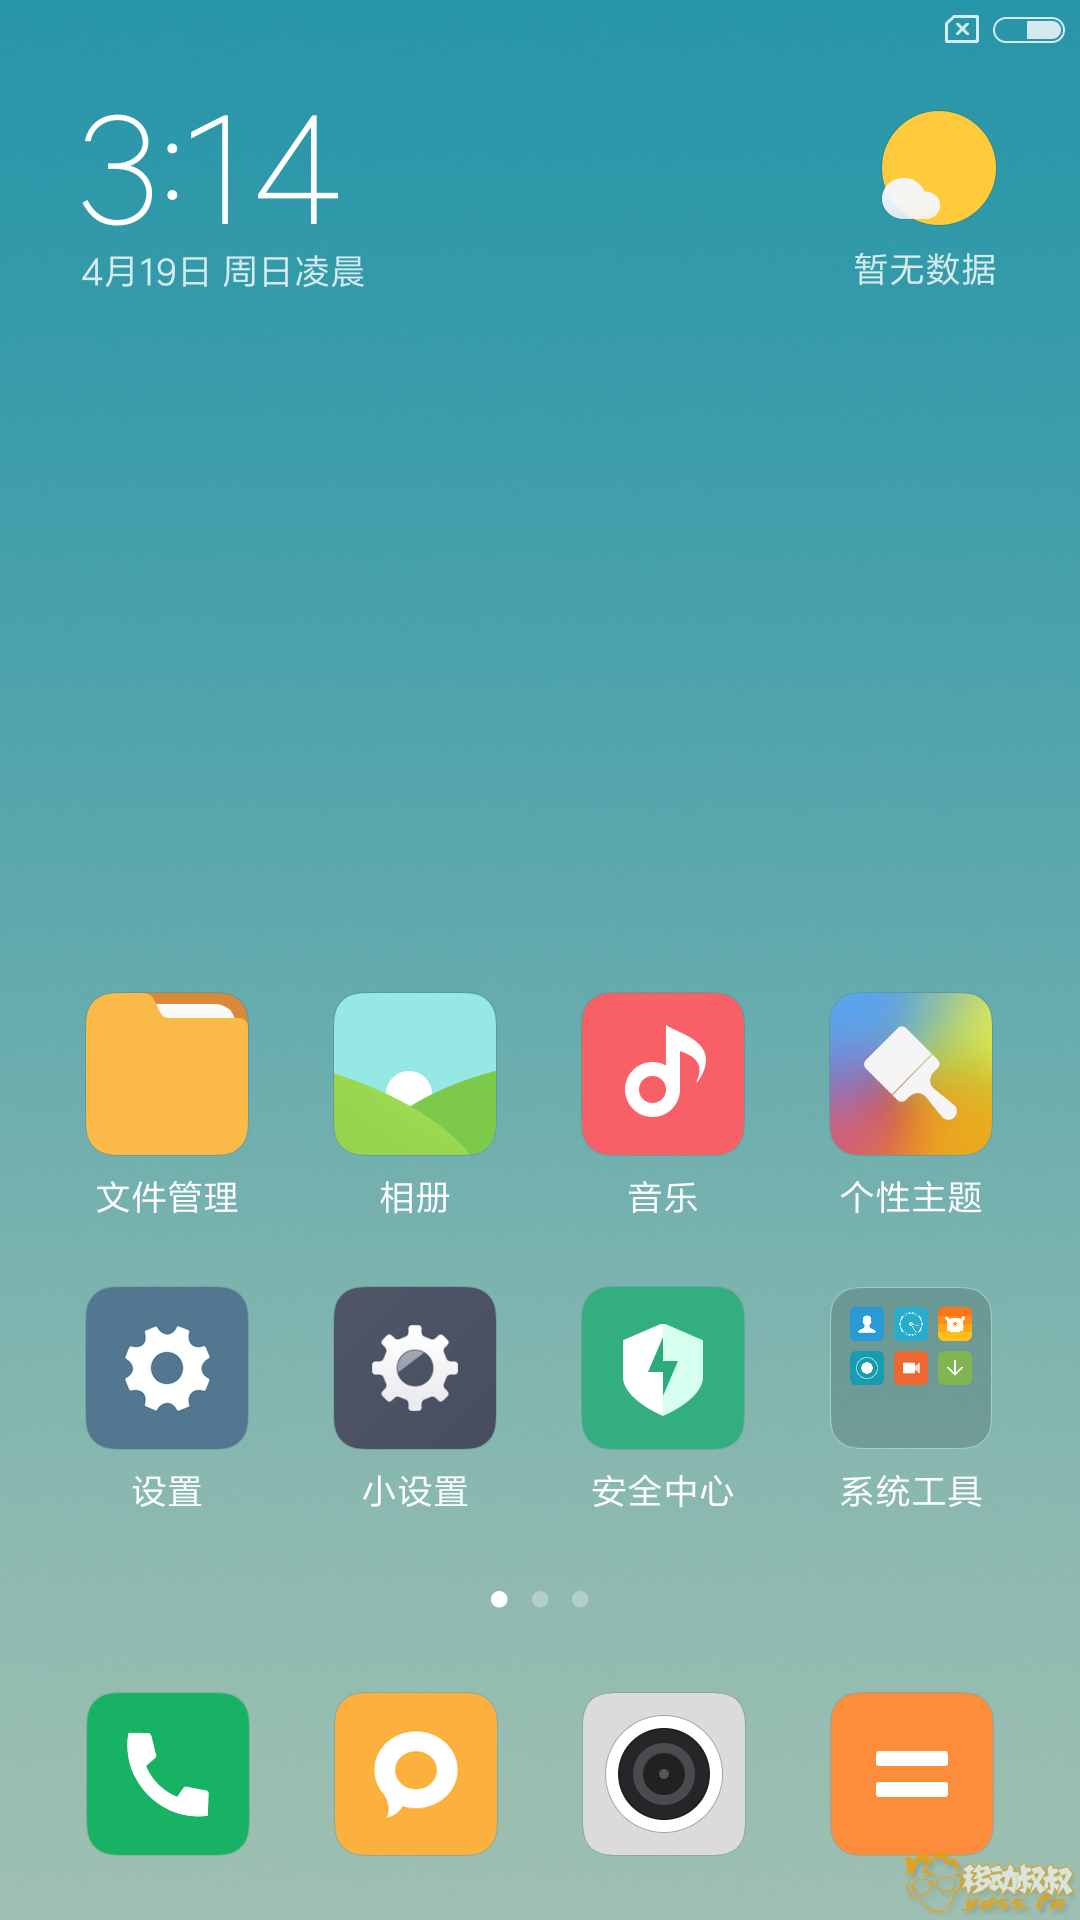 Screenshot_1970-04-19-03-14-15-427_com.miui.home.png